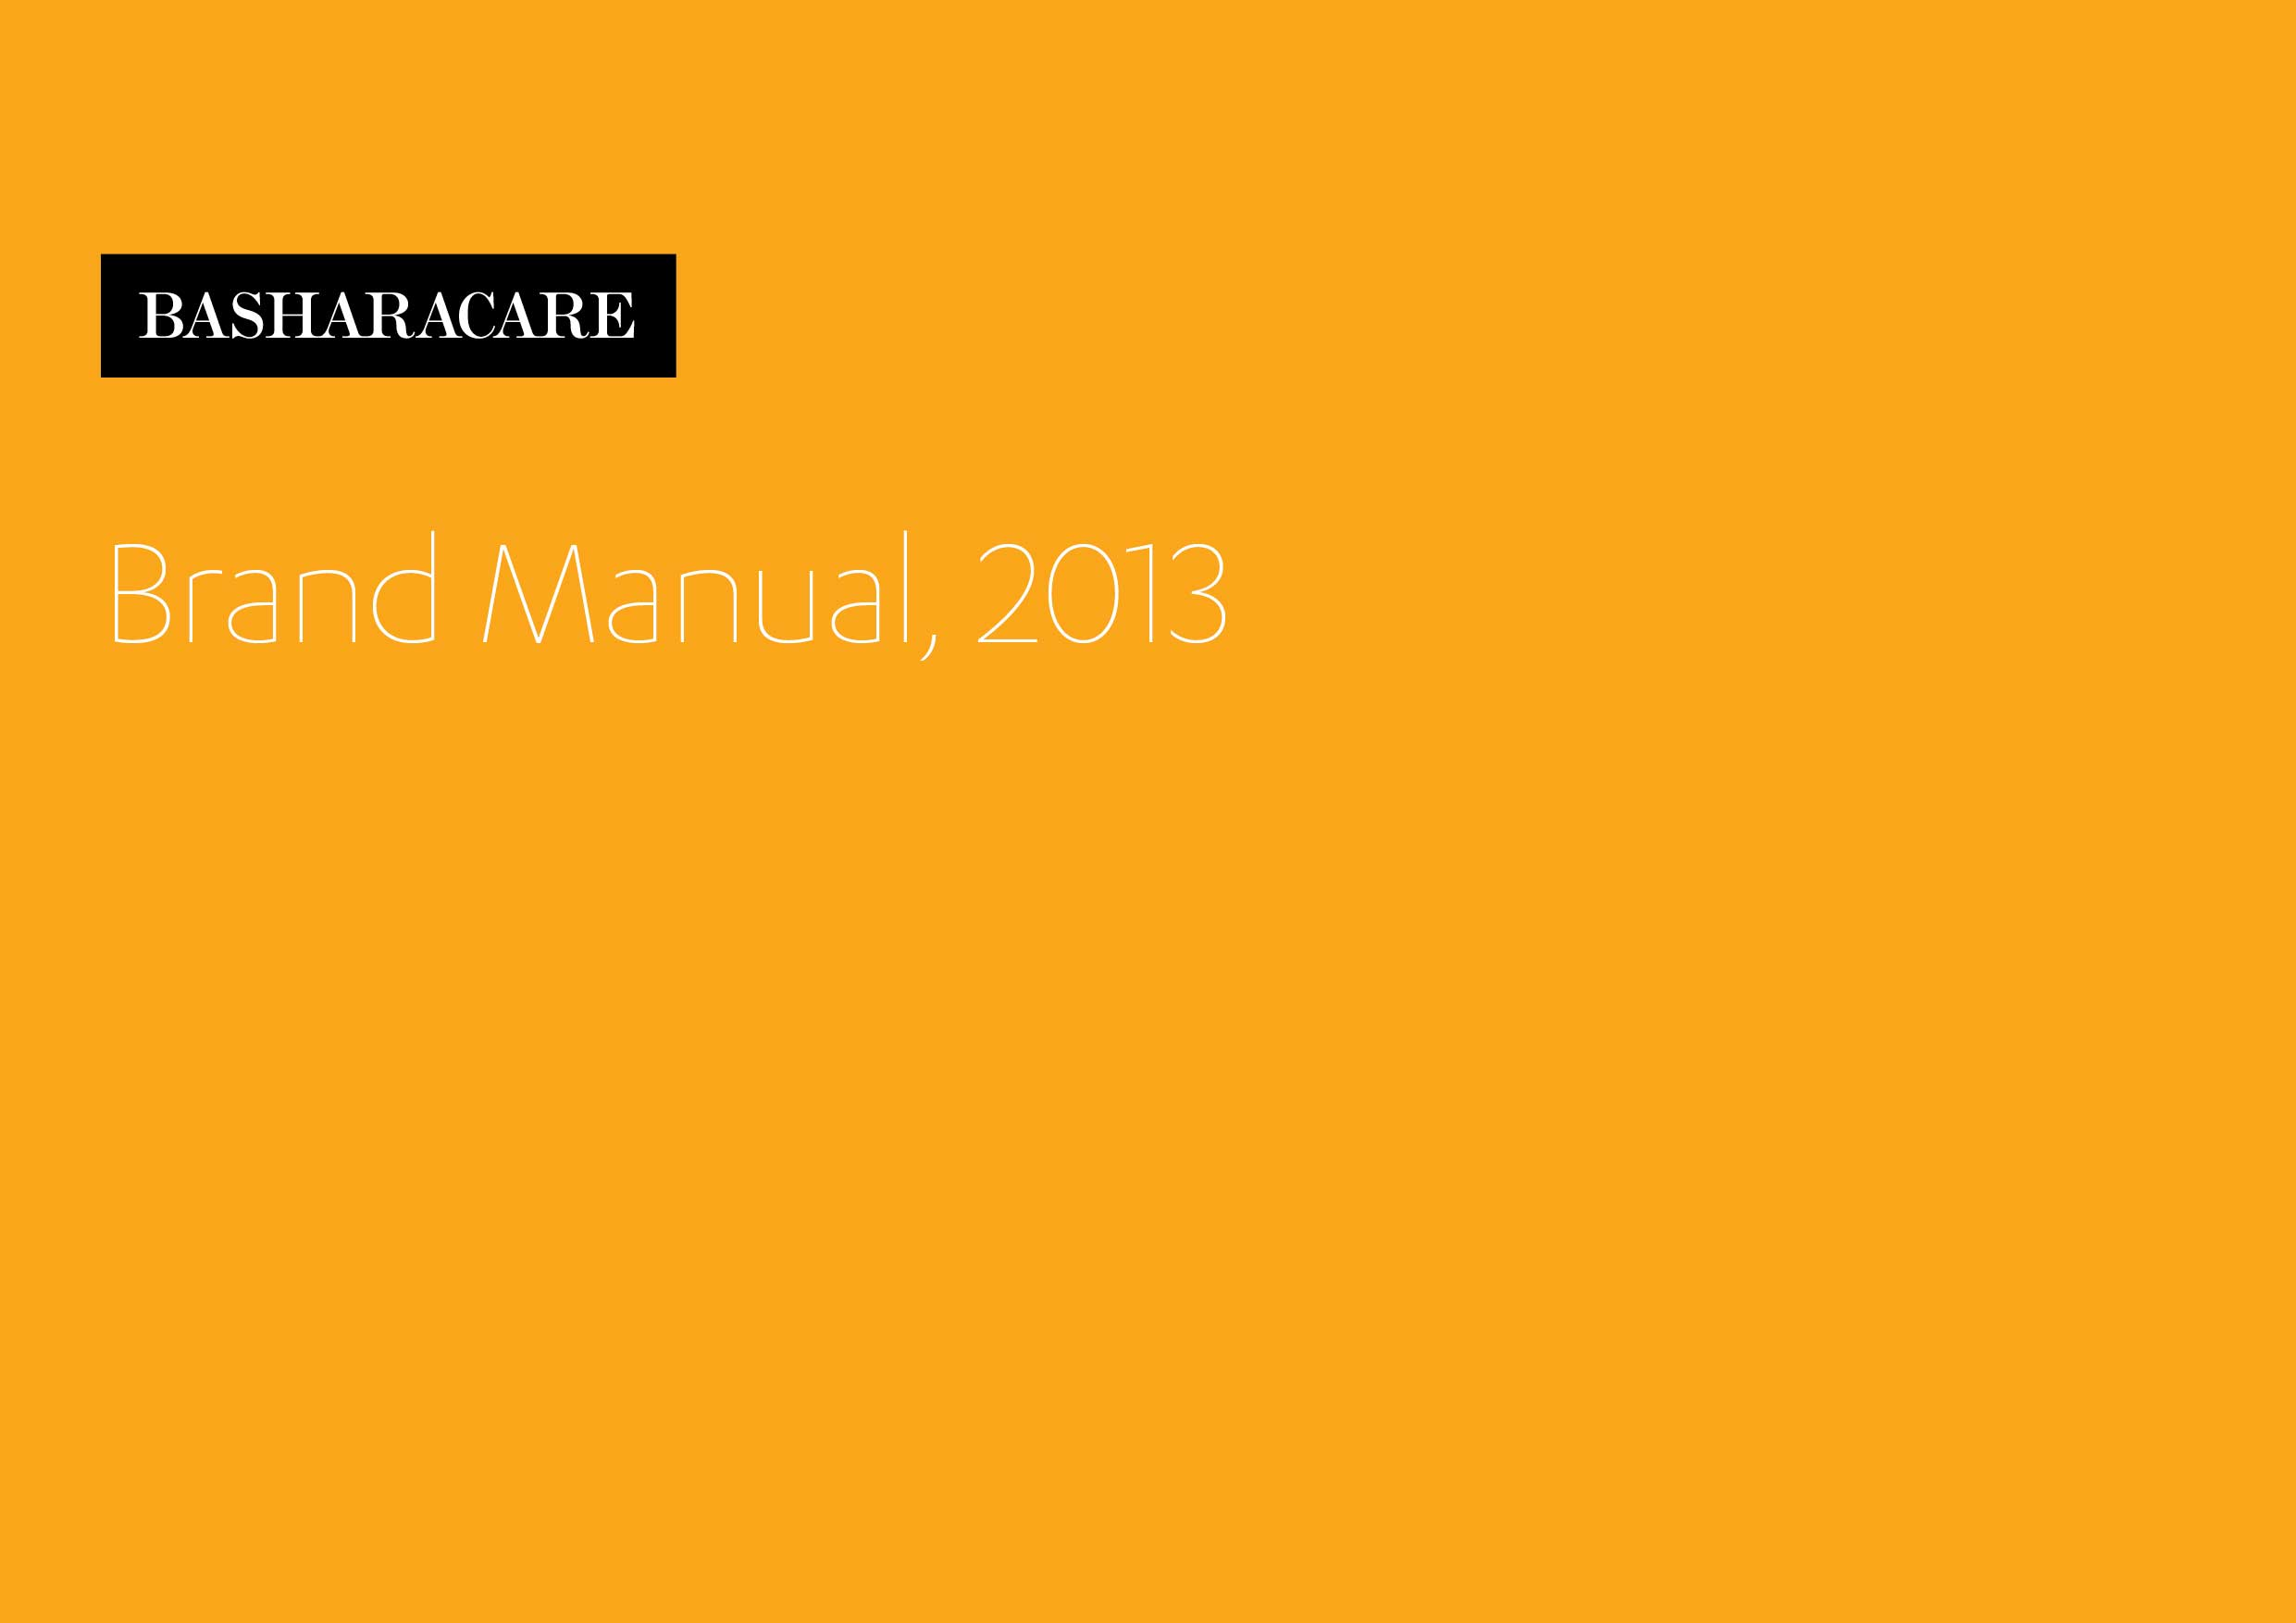 basharacare-brand-manual